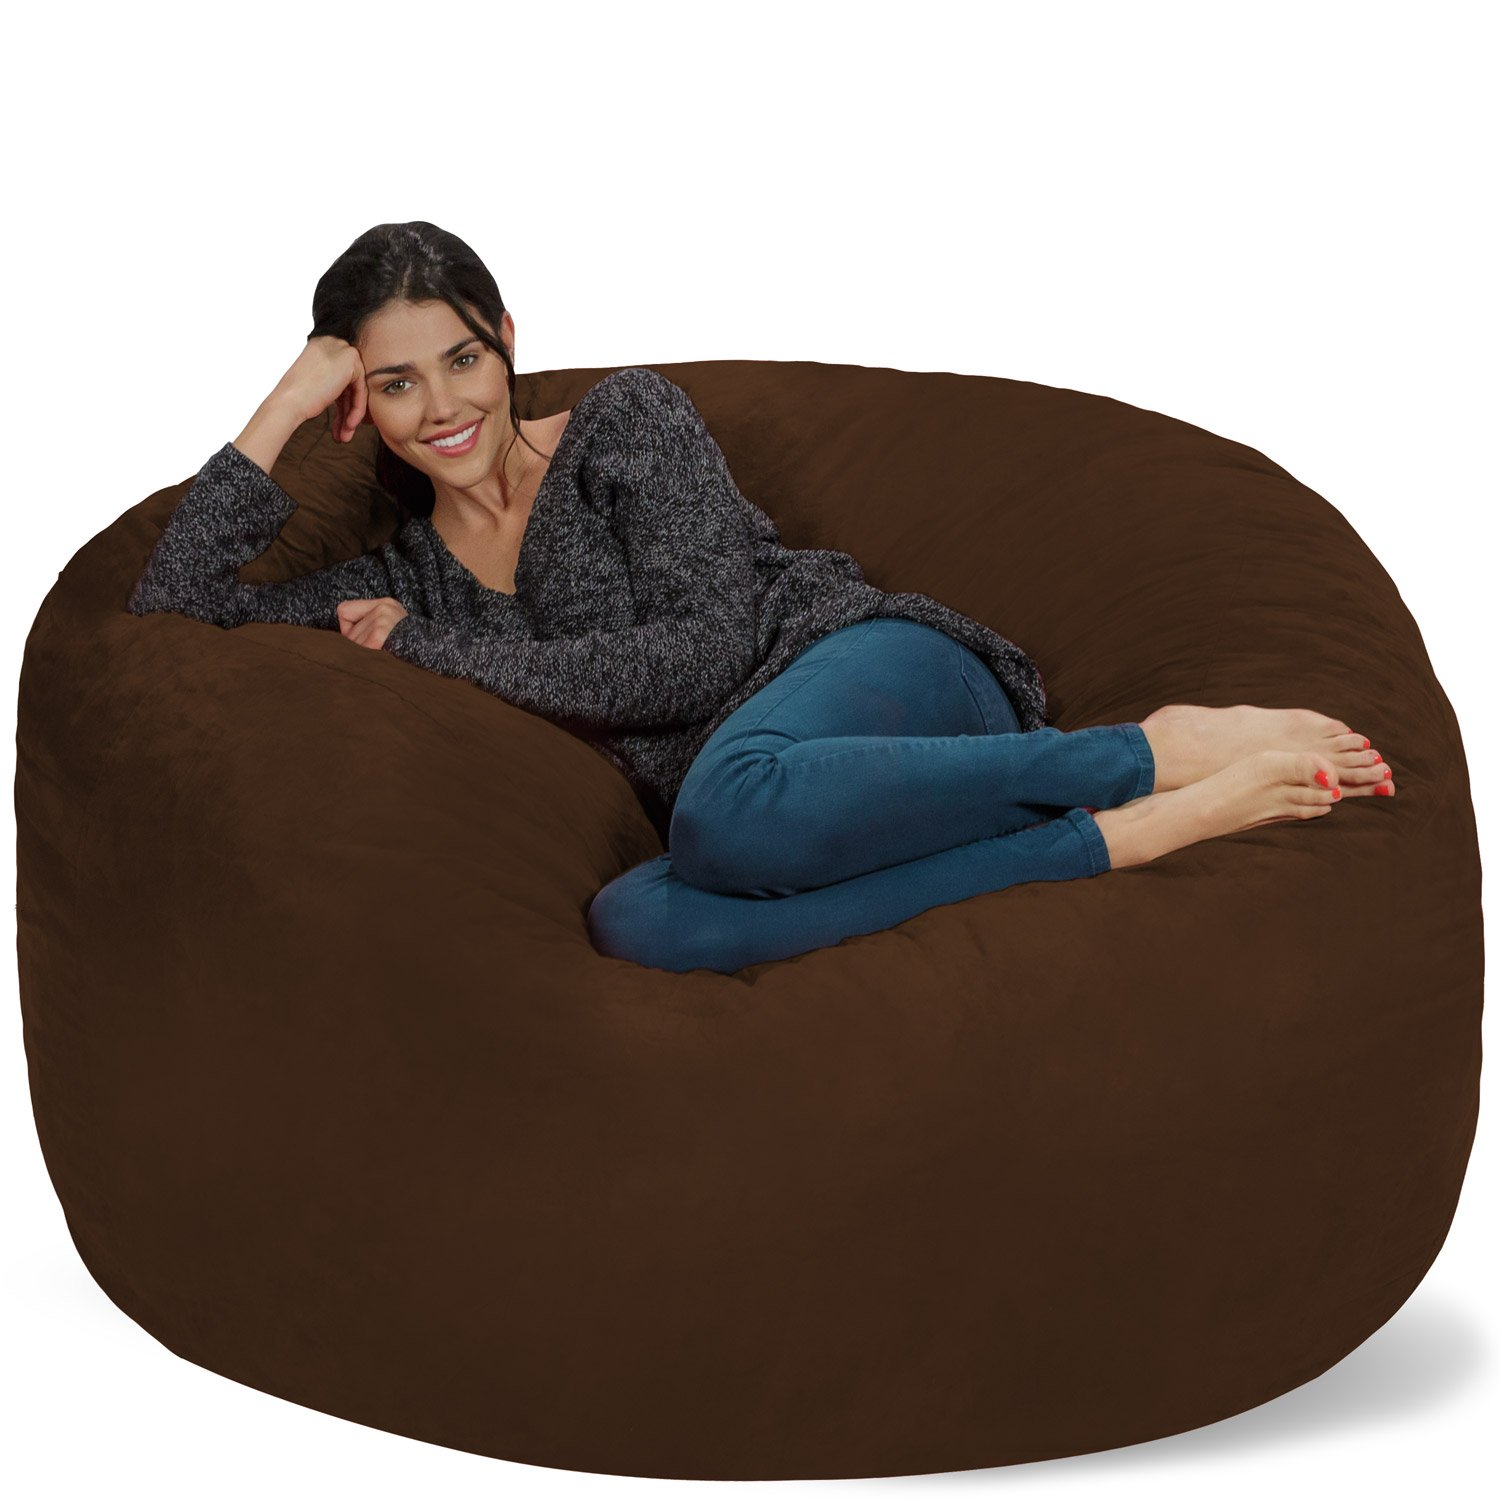 Chill Sack Bean Bag Chair: Giant Memory Foam Furniture Bags and Large Lounger - Big Sofa with Huge Water Resistant Soft Micro Suede Cover - Chocolate, 5 feet